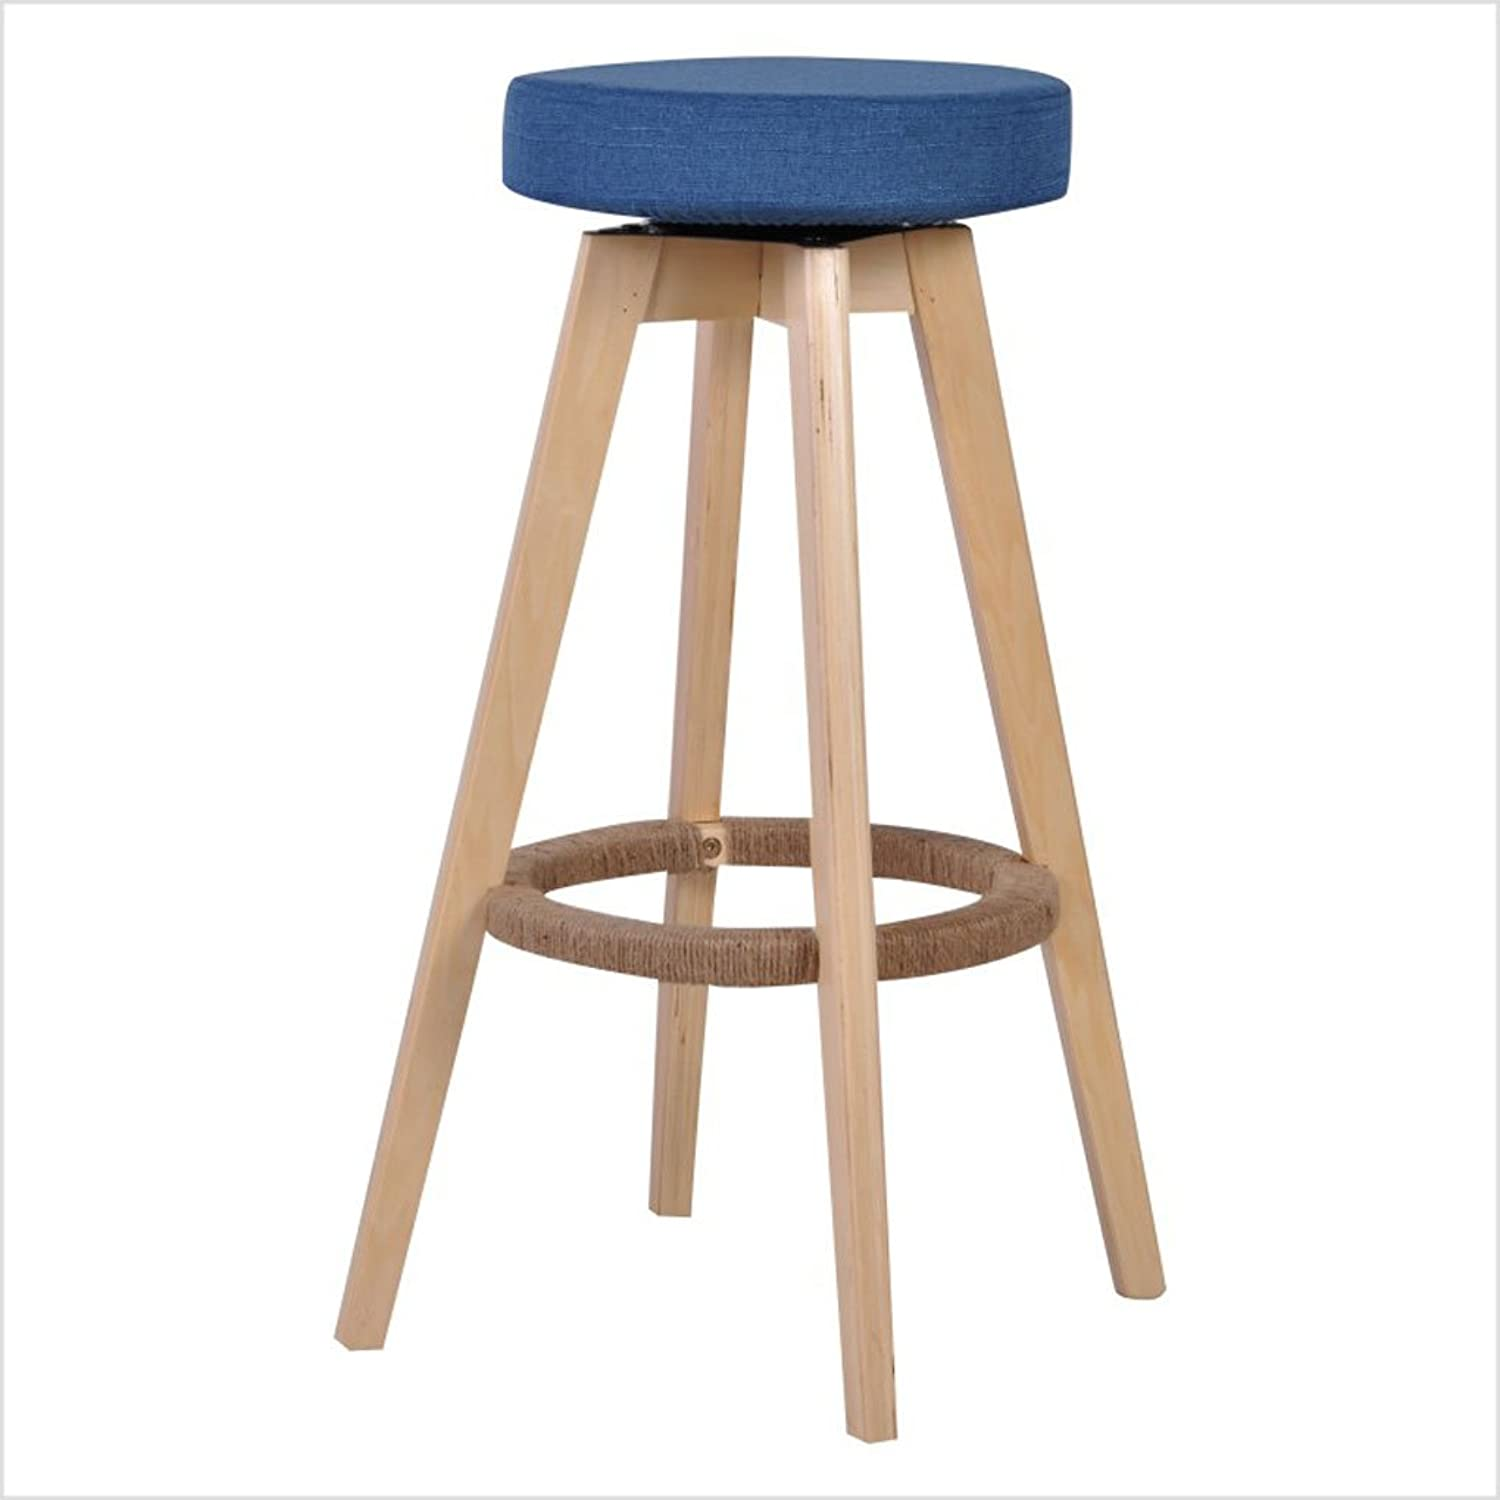 Solid Wood bar Chairs Fashion redate bar Chair Simple High Stool Bench Household Bar Stool Chair 37 × 37 × 73.5cm (color    4)